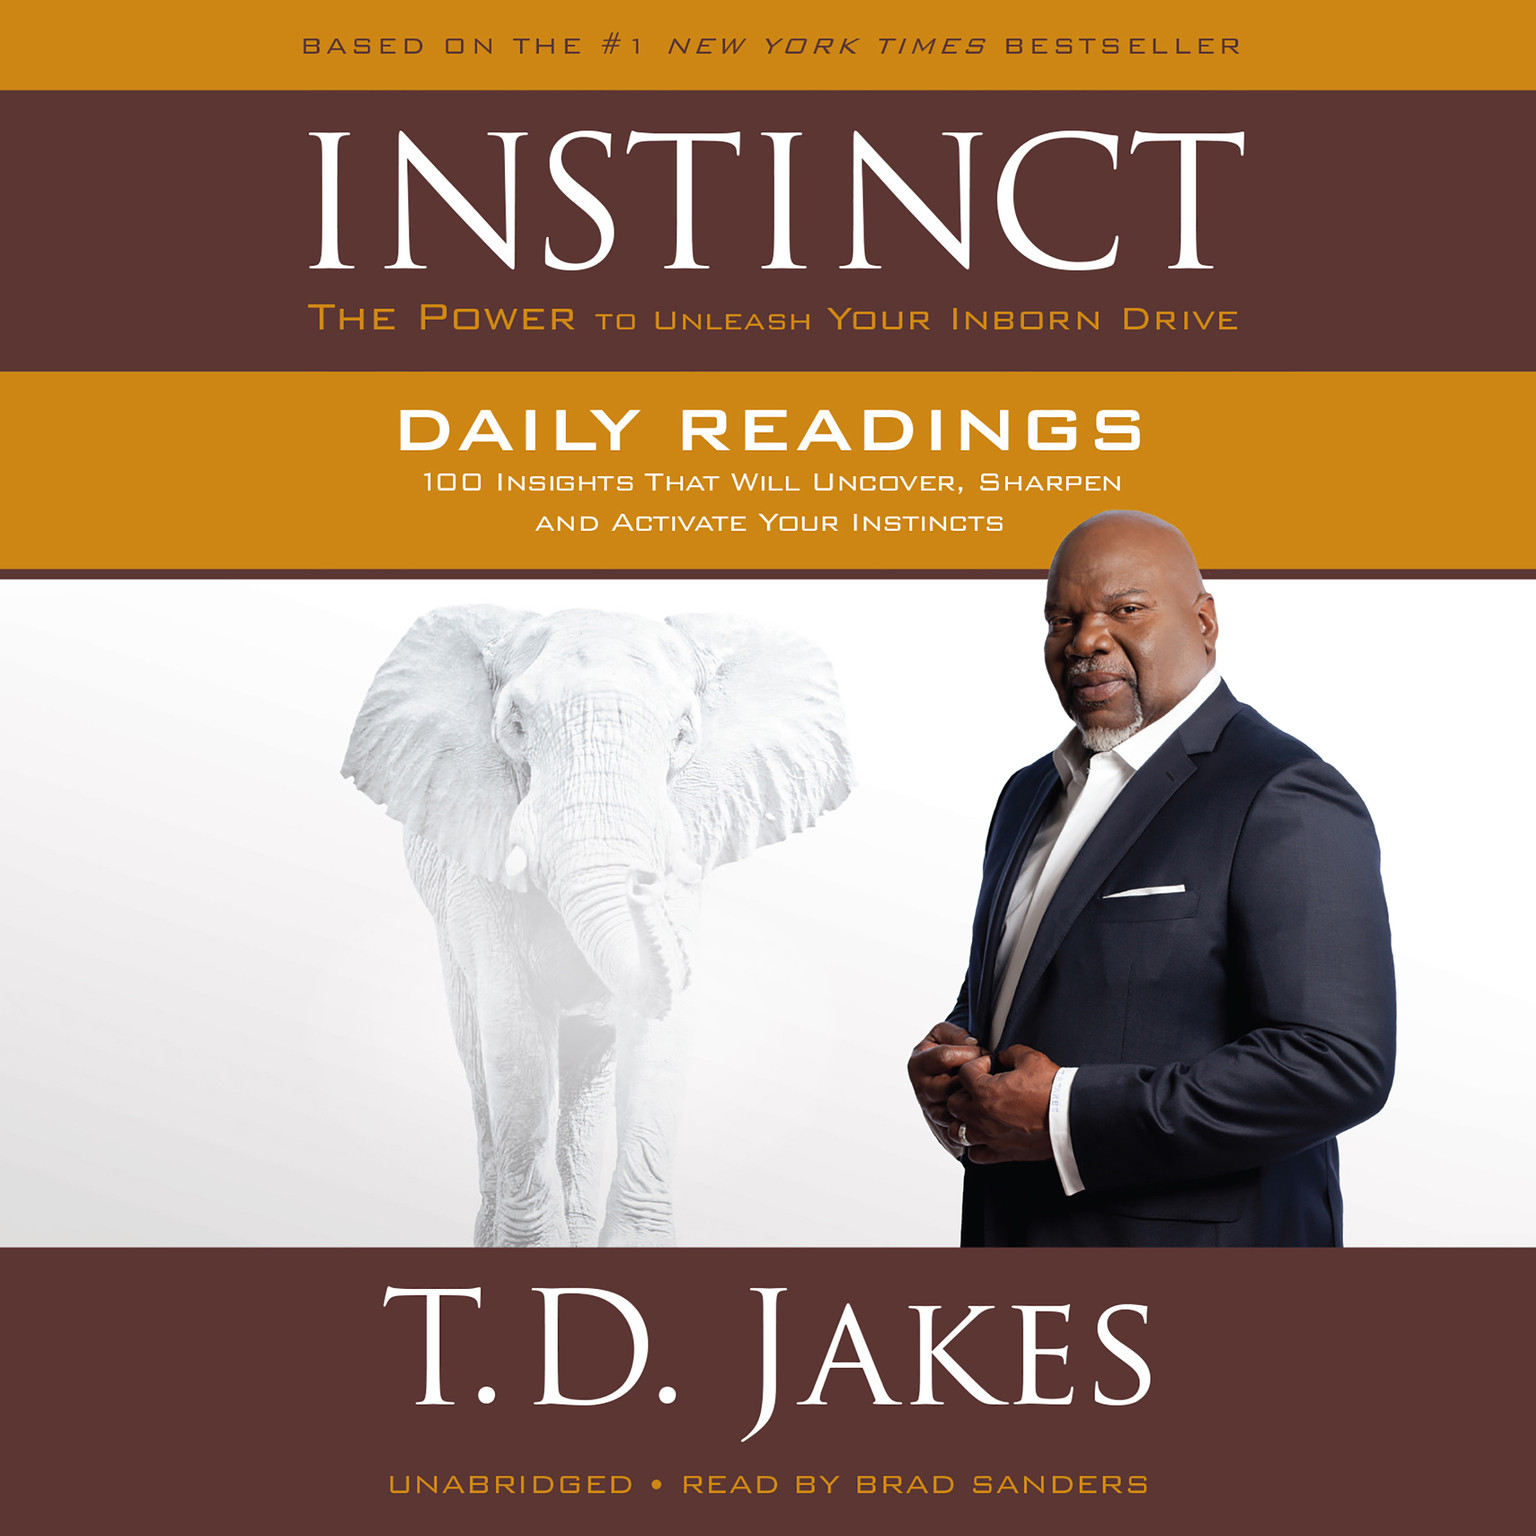 instinct daily readings audiobook by t d jakes